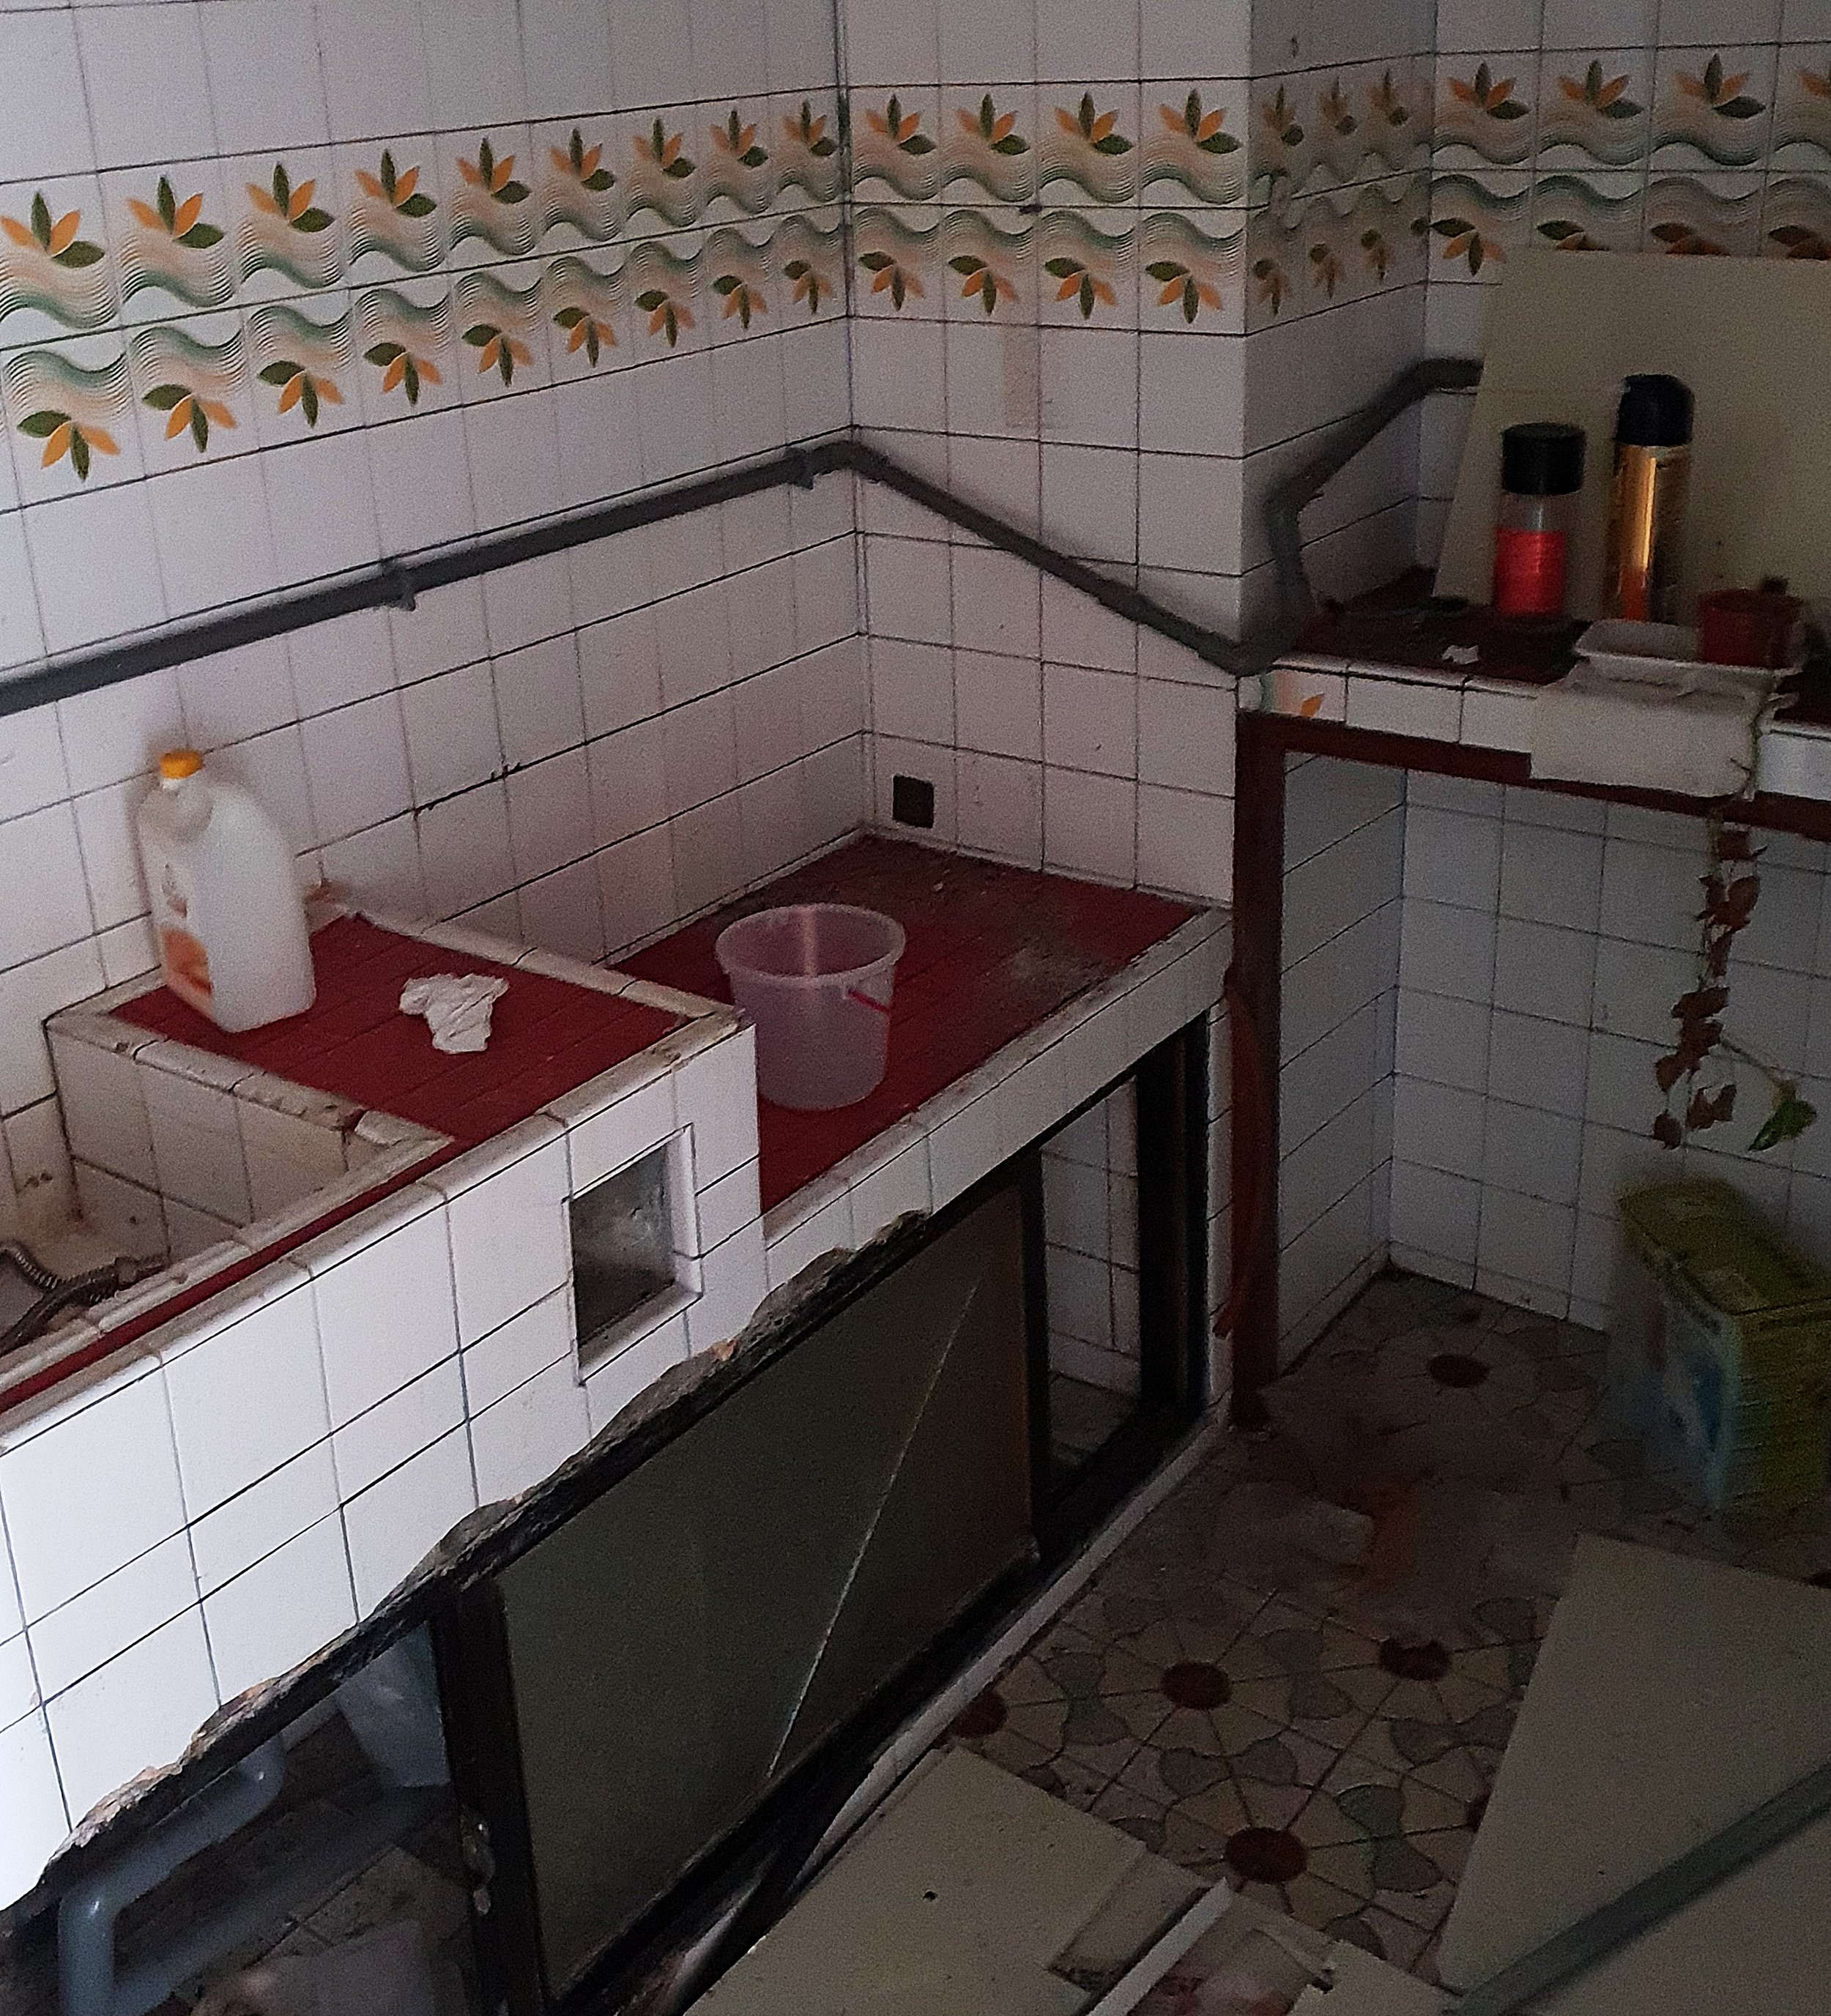 Old style concrete kitchen on one of the lower floors